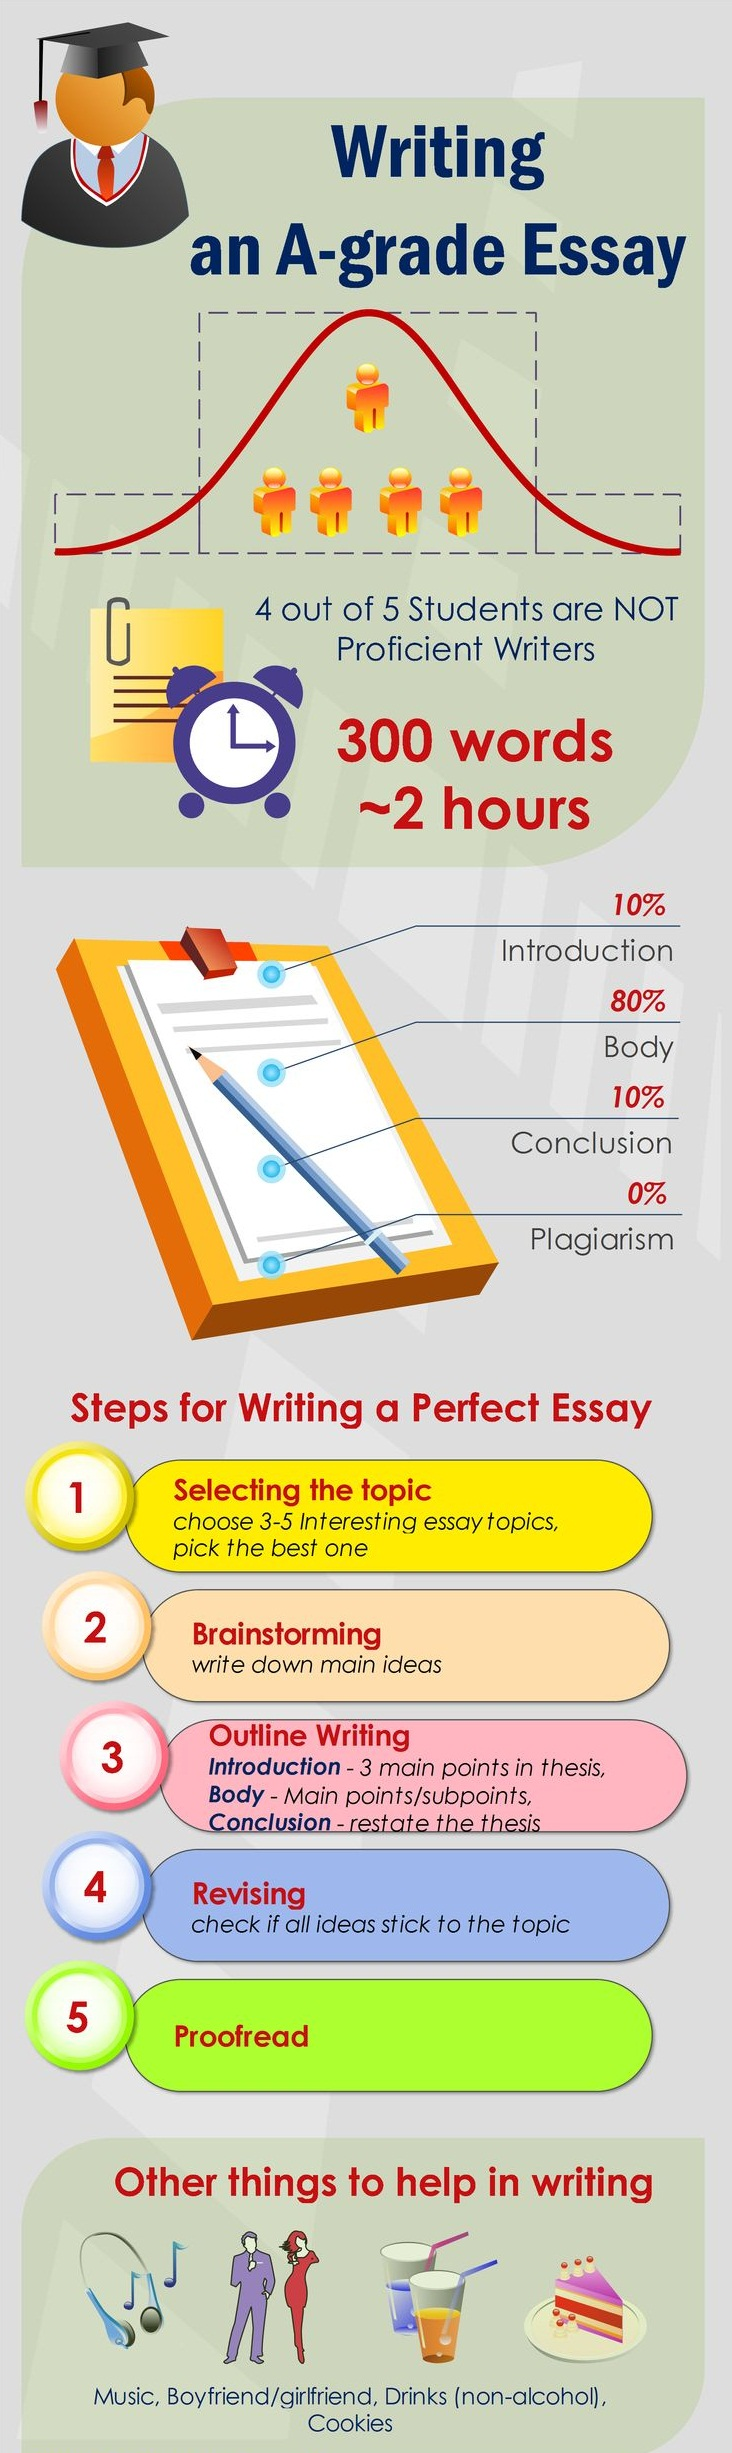 literary essay writing tips